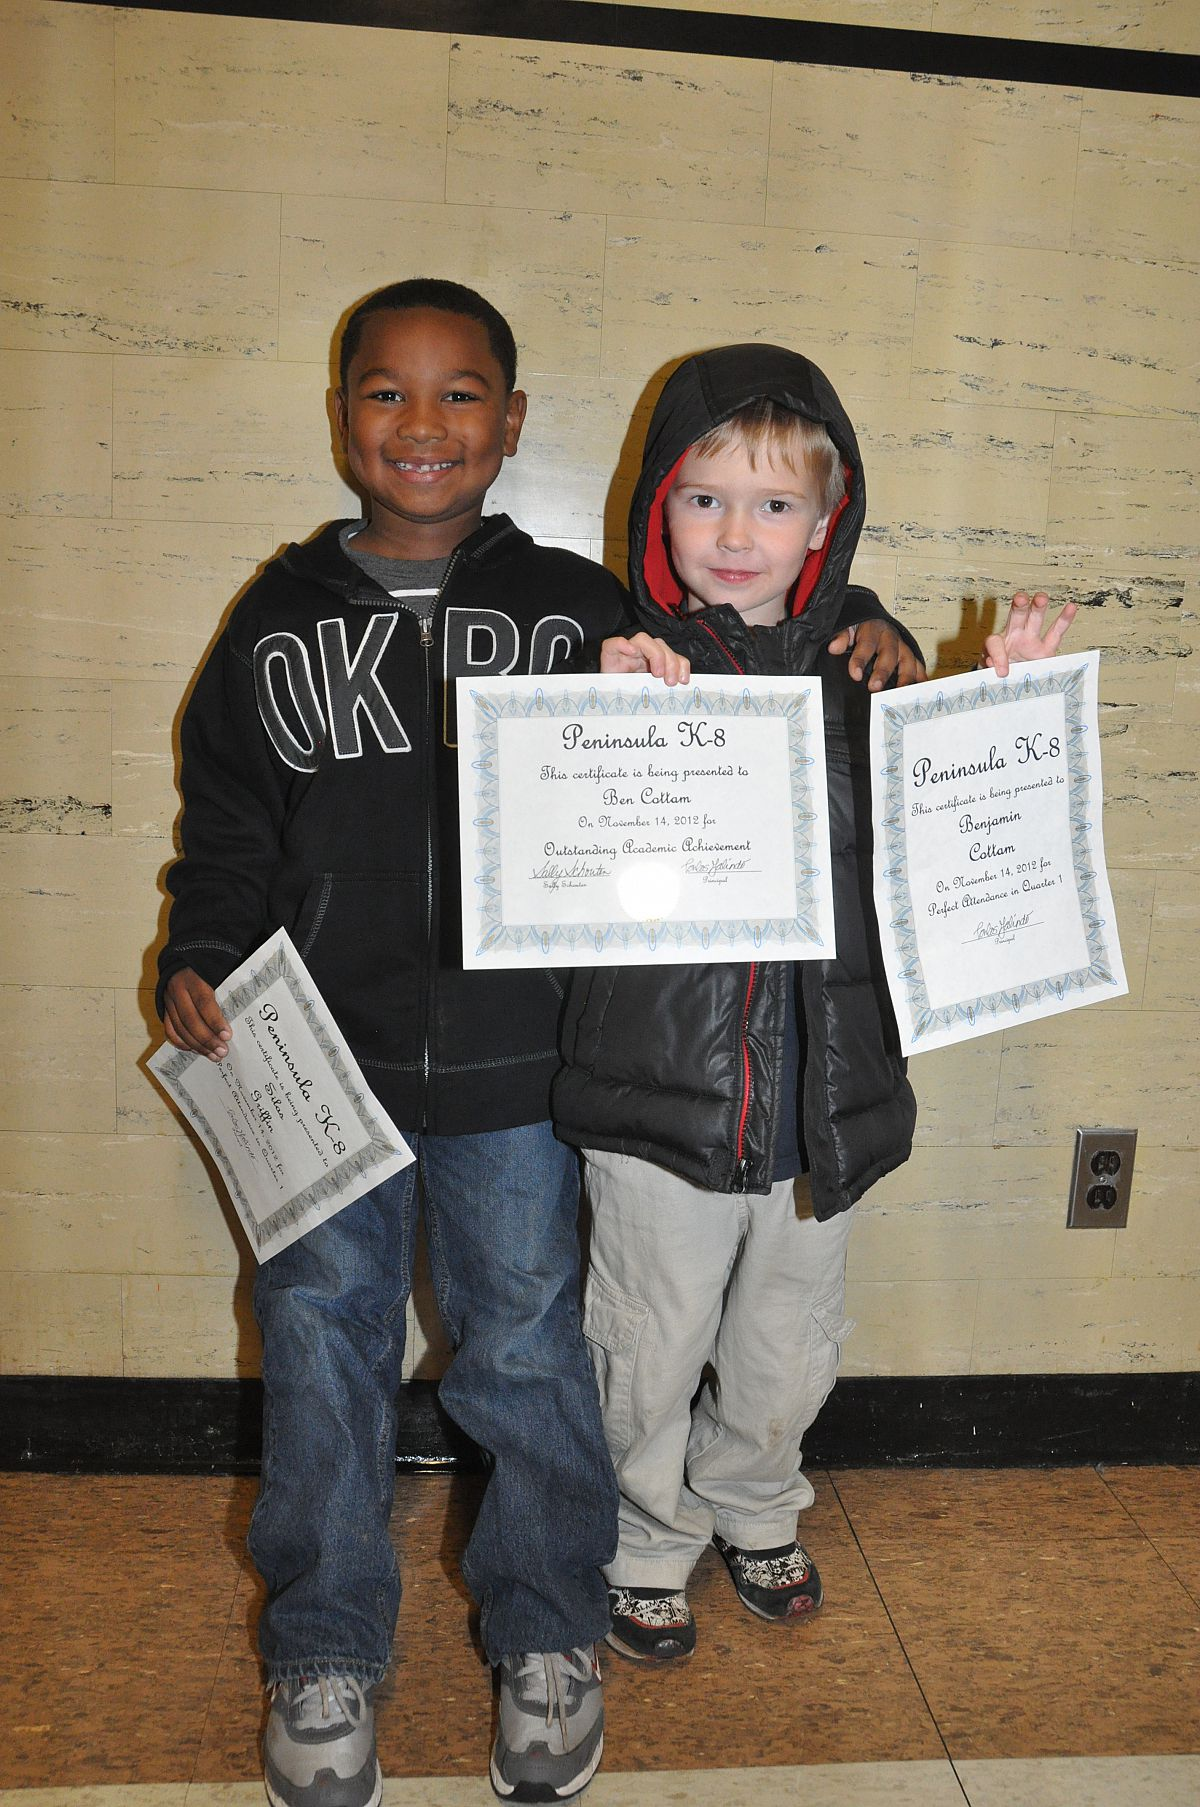 Ben with Silas and their awards - from the Peninsula School Awards Fall 2012 photo gallery.